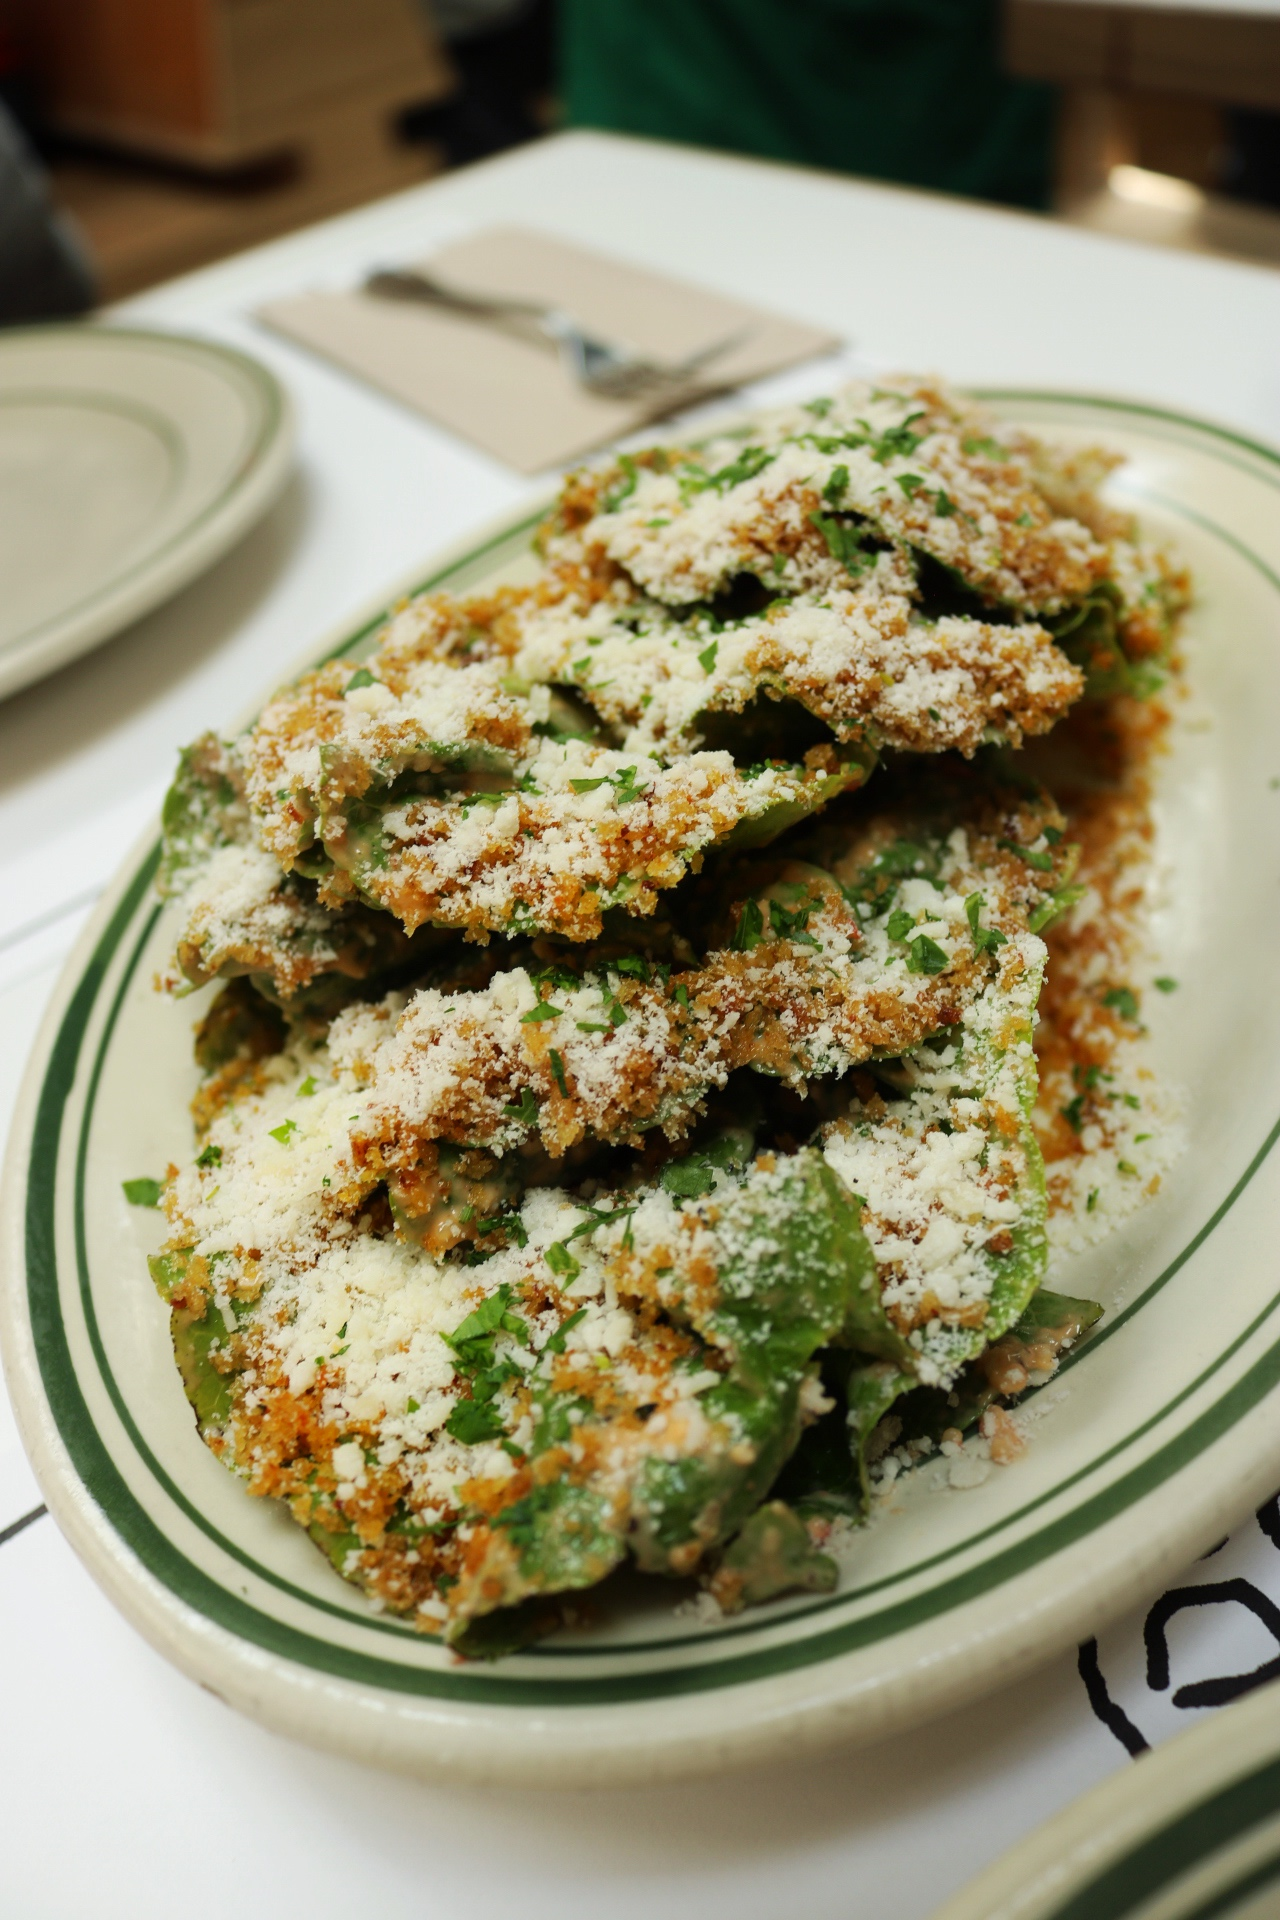 Gem Lettuce w/Spicy Calabrian Dressing, Parm & Breadcrumbs Jon & Vinnys